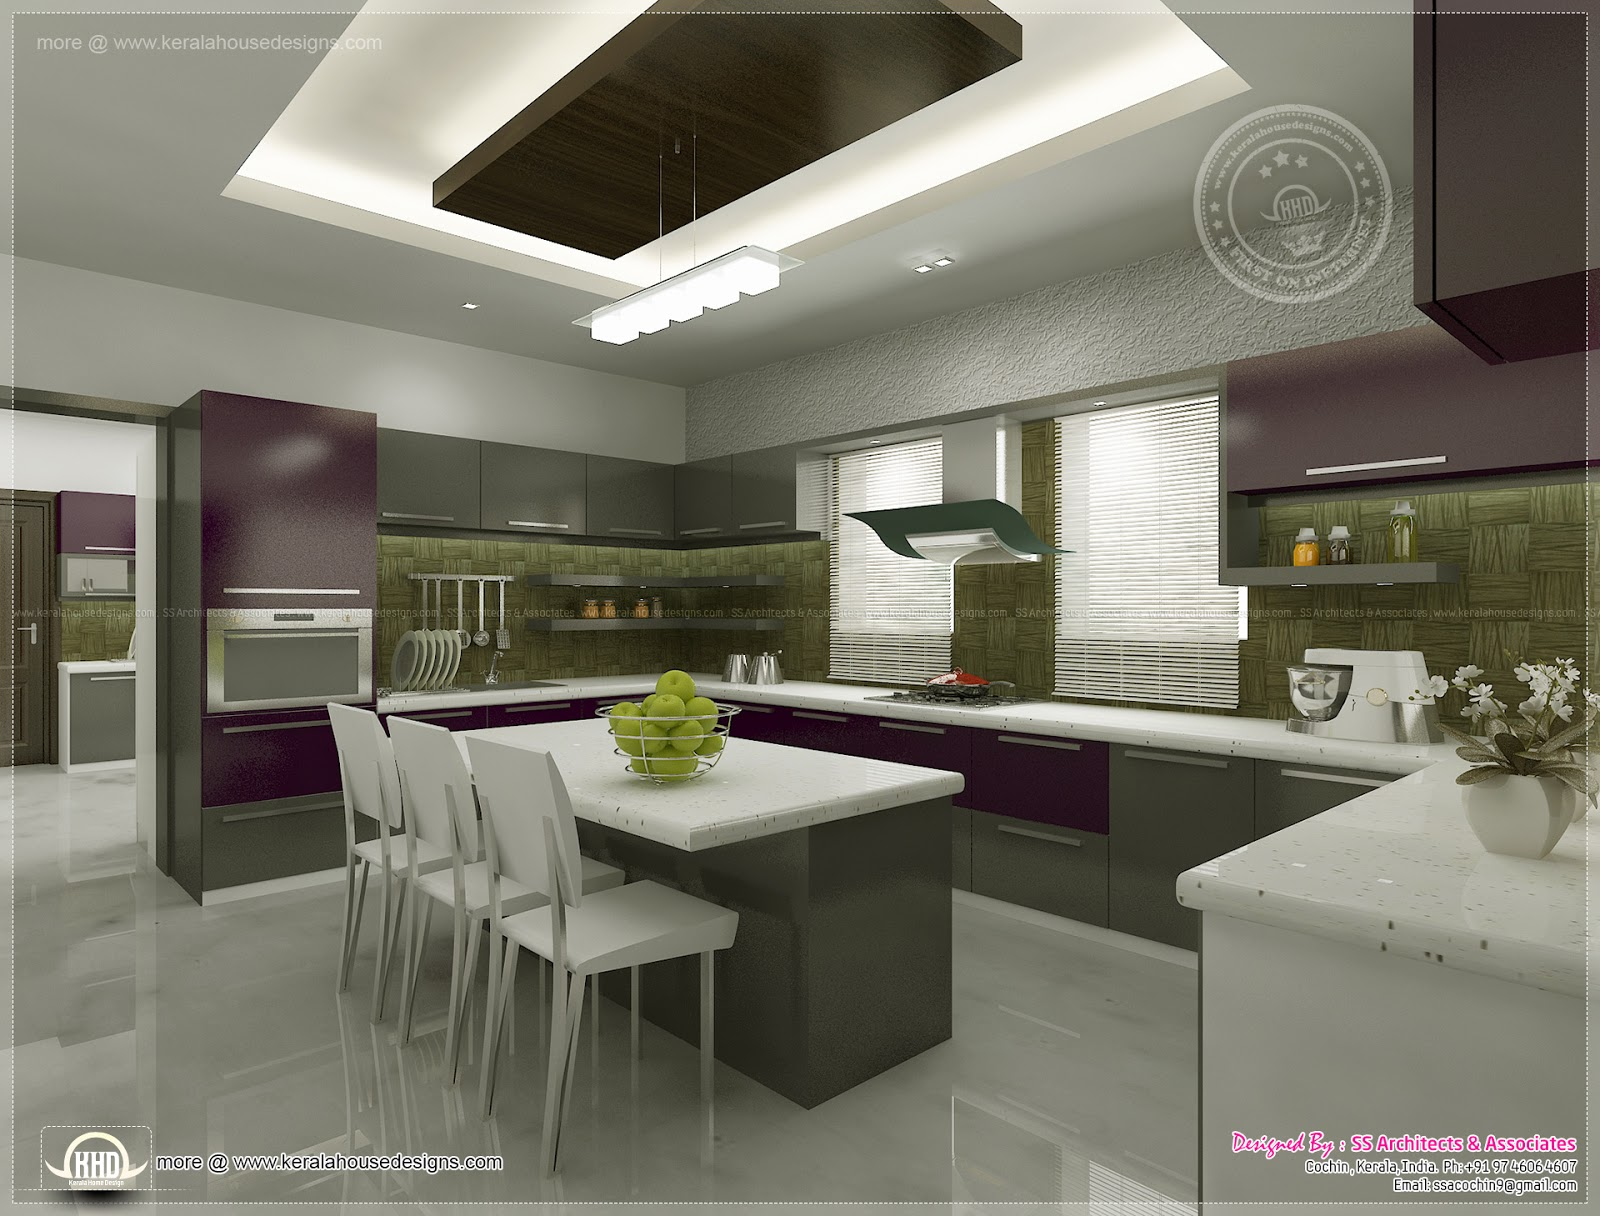 Kitchen interior views by ss architects cochin house for Interior designs kitchen